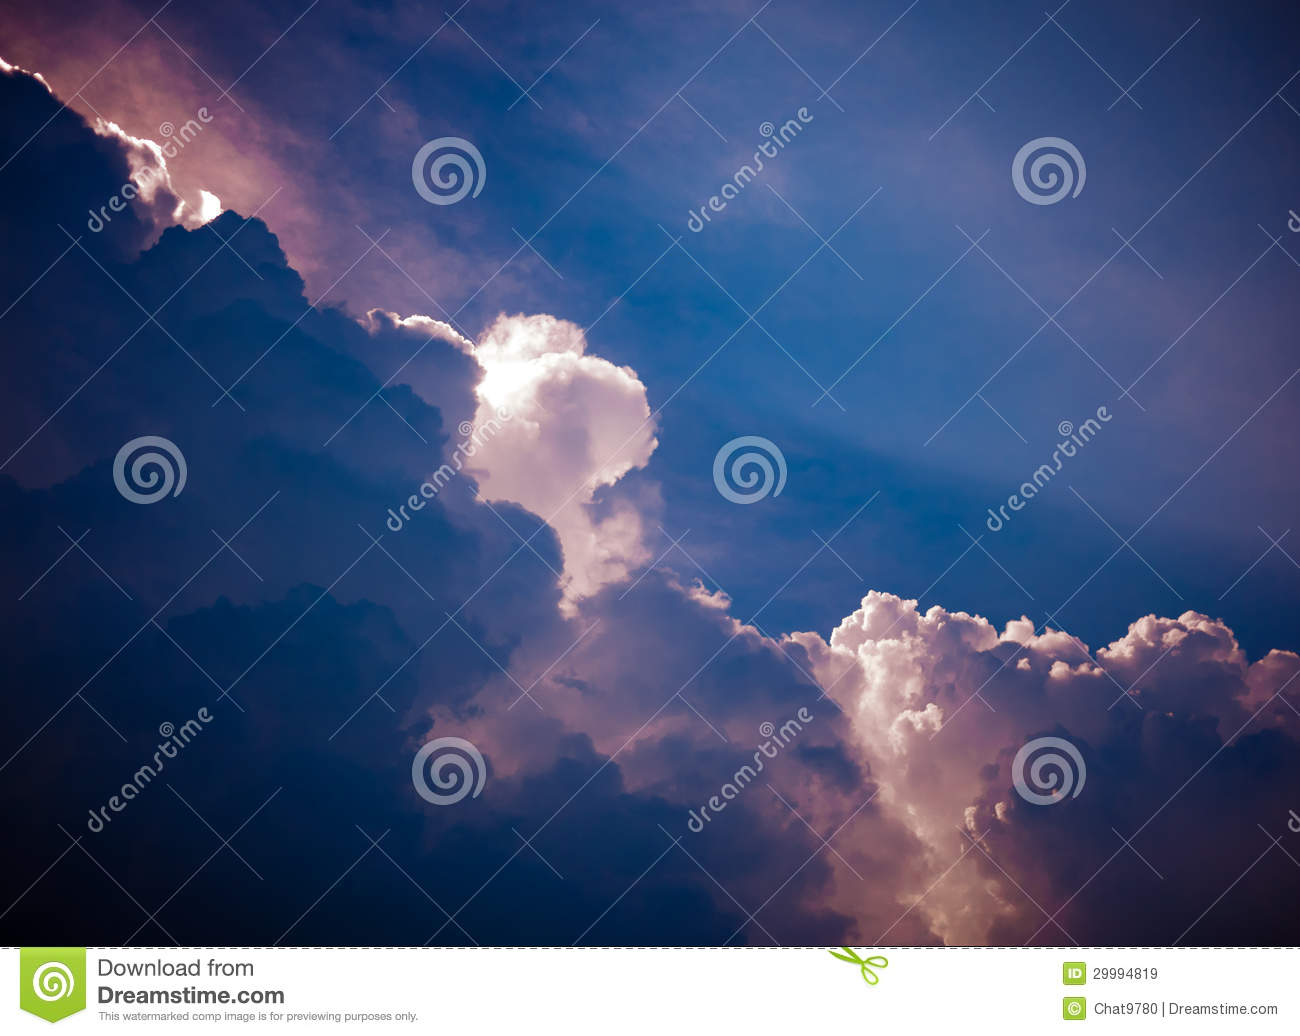 Fotos De Stock Chat9780: Dramatic Cloudy Sky Royalty Free Stock Images